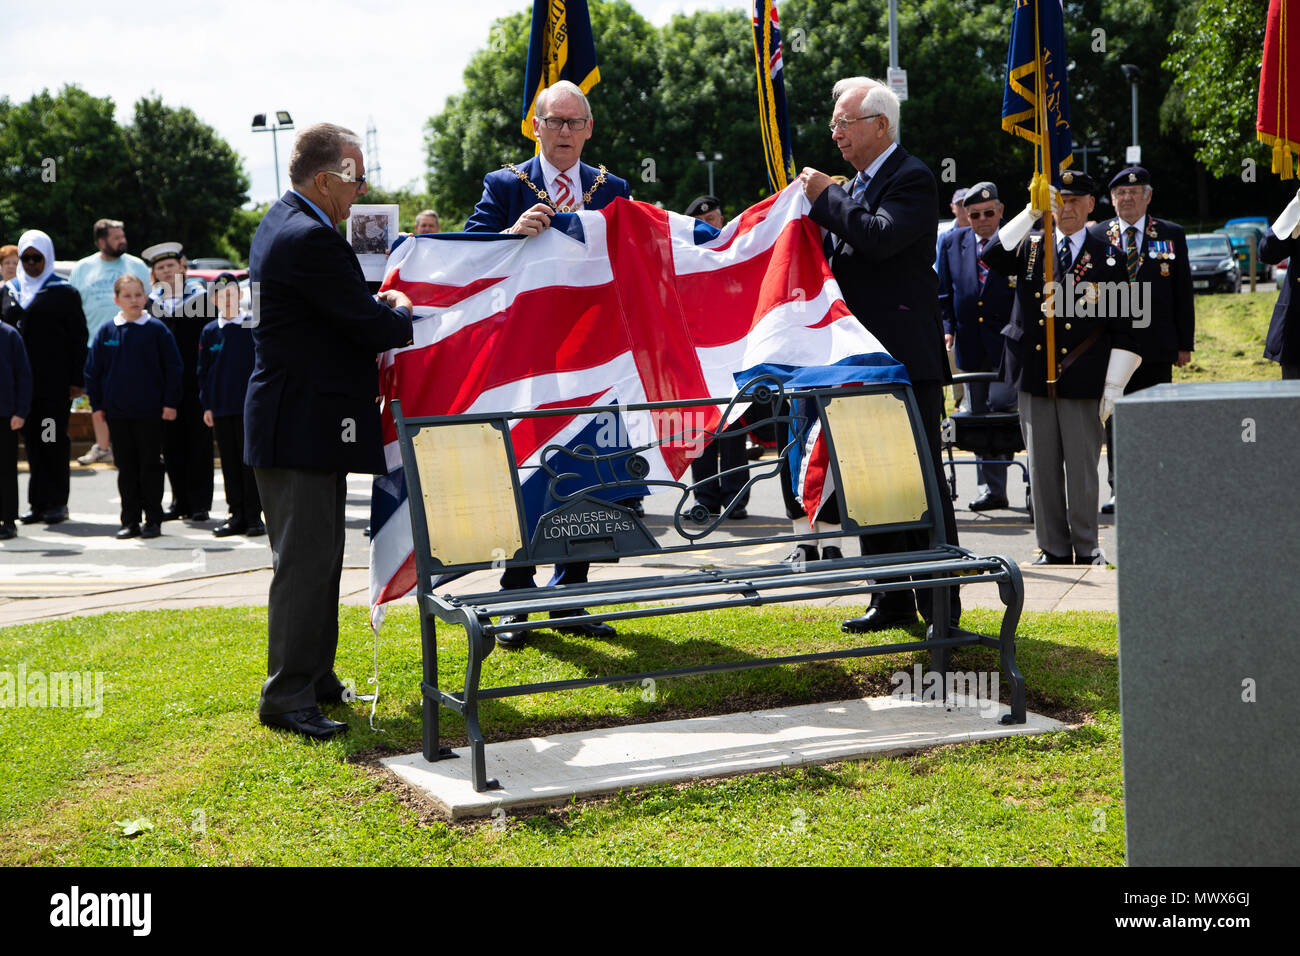 Gravesend Airport, Kent, UK. 2nd Jun, 2018. The Mayor of Gravesham Cllr David Hurley helps unveil the new benches on the site of the old Gravesend airport which played a vital role in the second world war. Credit A Beck/Alamy Live Credit: Andrew Beck/Alamy Live News - Stock Image